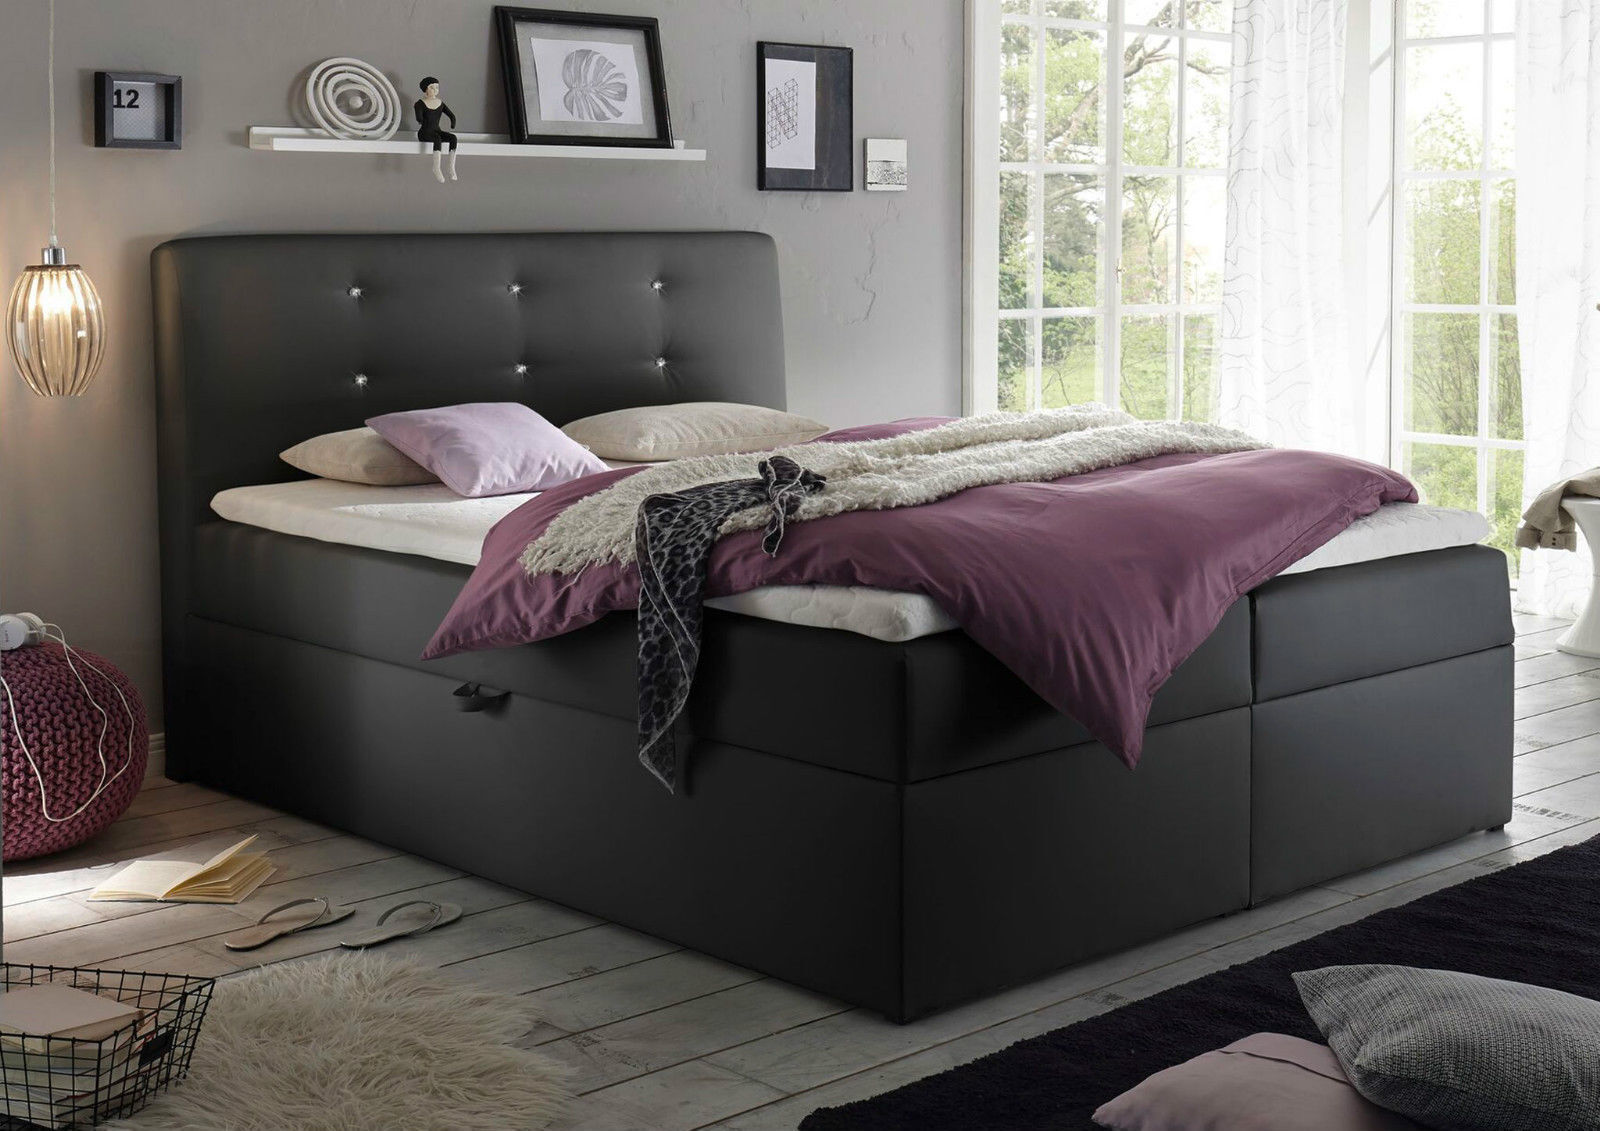 120x200 boxspringbett mit visco kasten bett komfortbett hotelbett leder 120x200 ebay. Black Bedroom Furniture Sets. Home Design Ideas